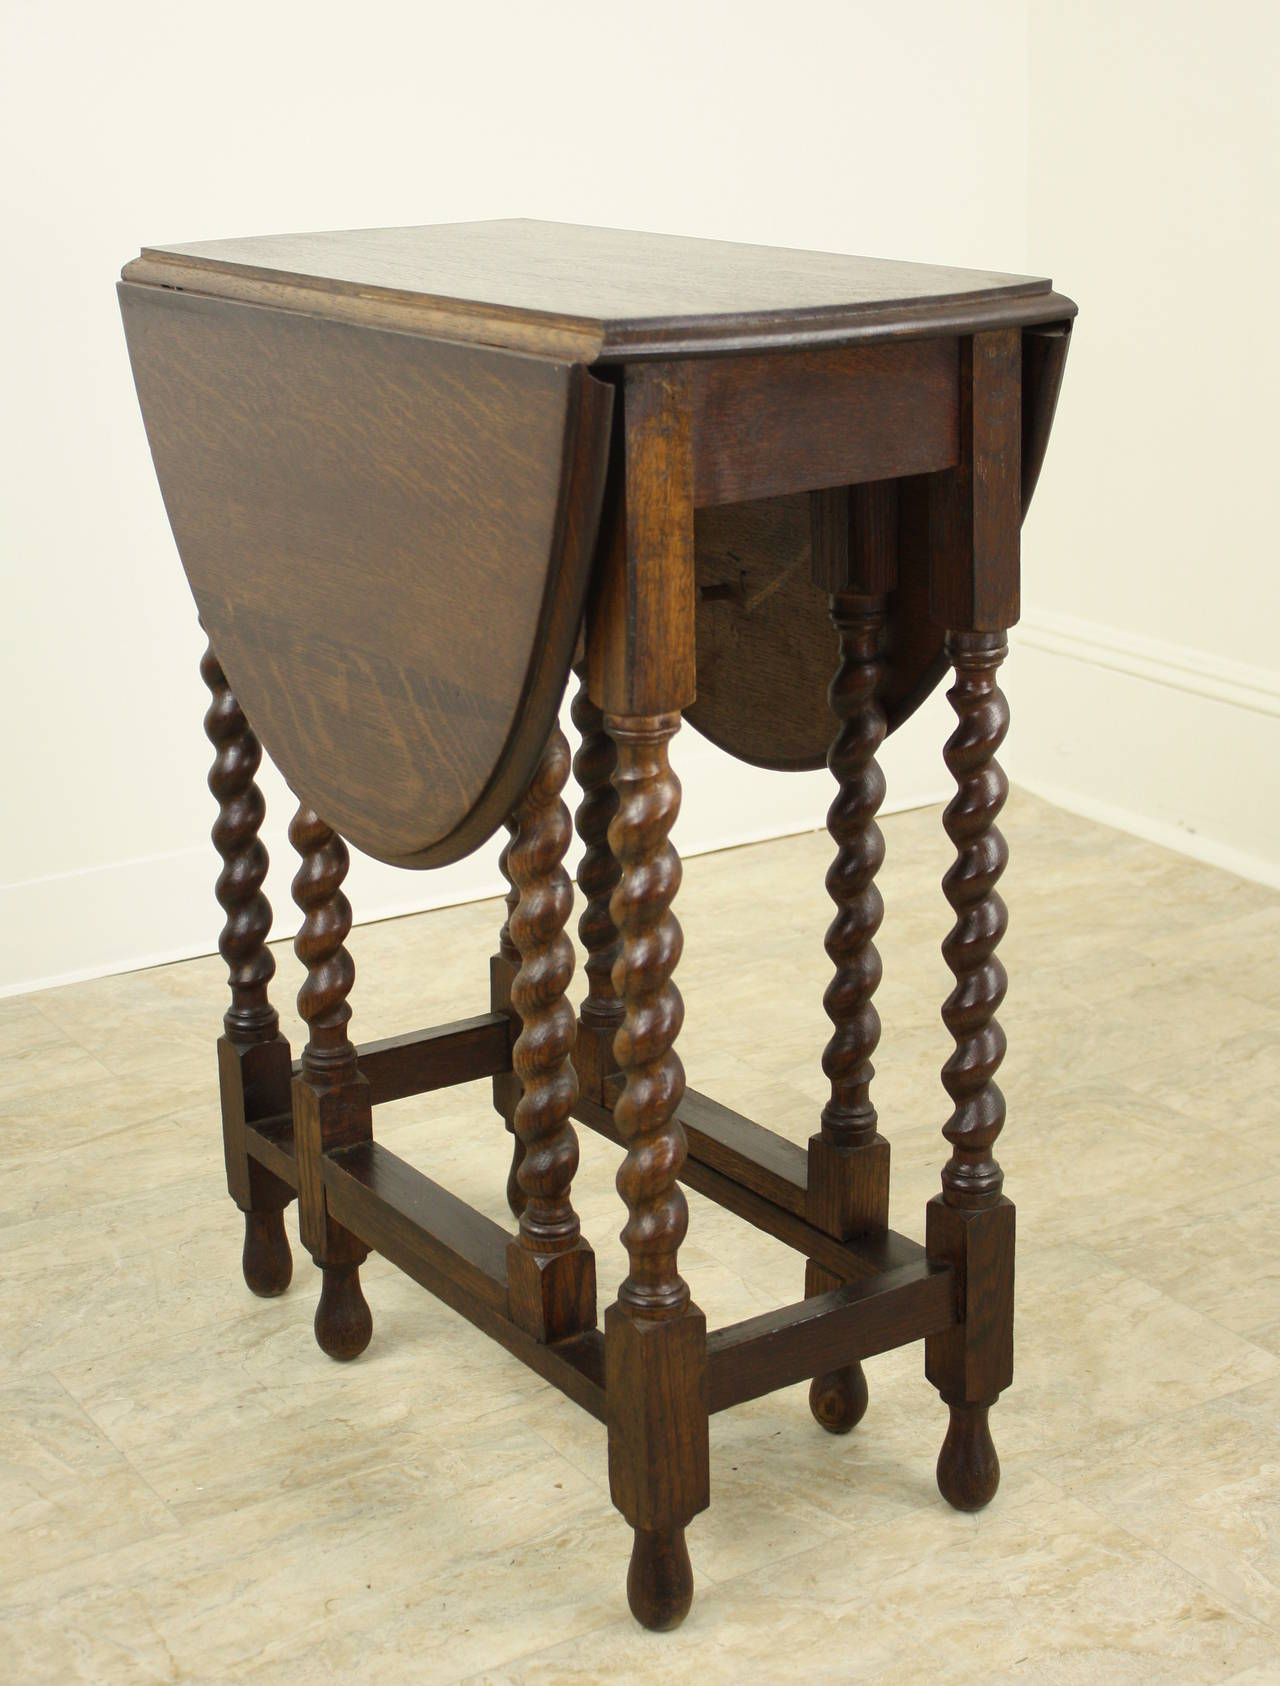 Small Antique English Barley Twist Gateleg Table At Stdibs - Antique gateleg tables